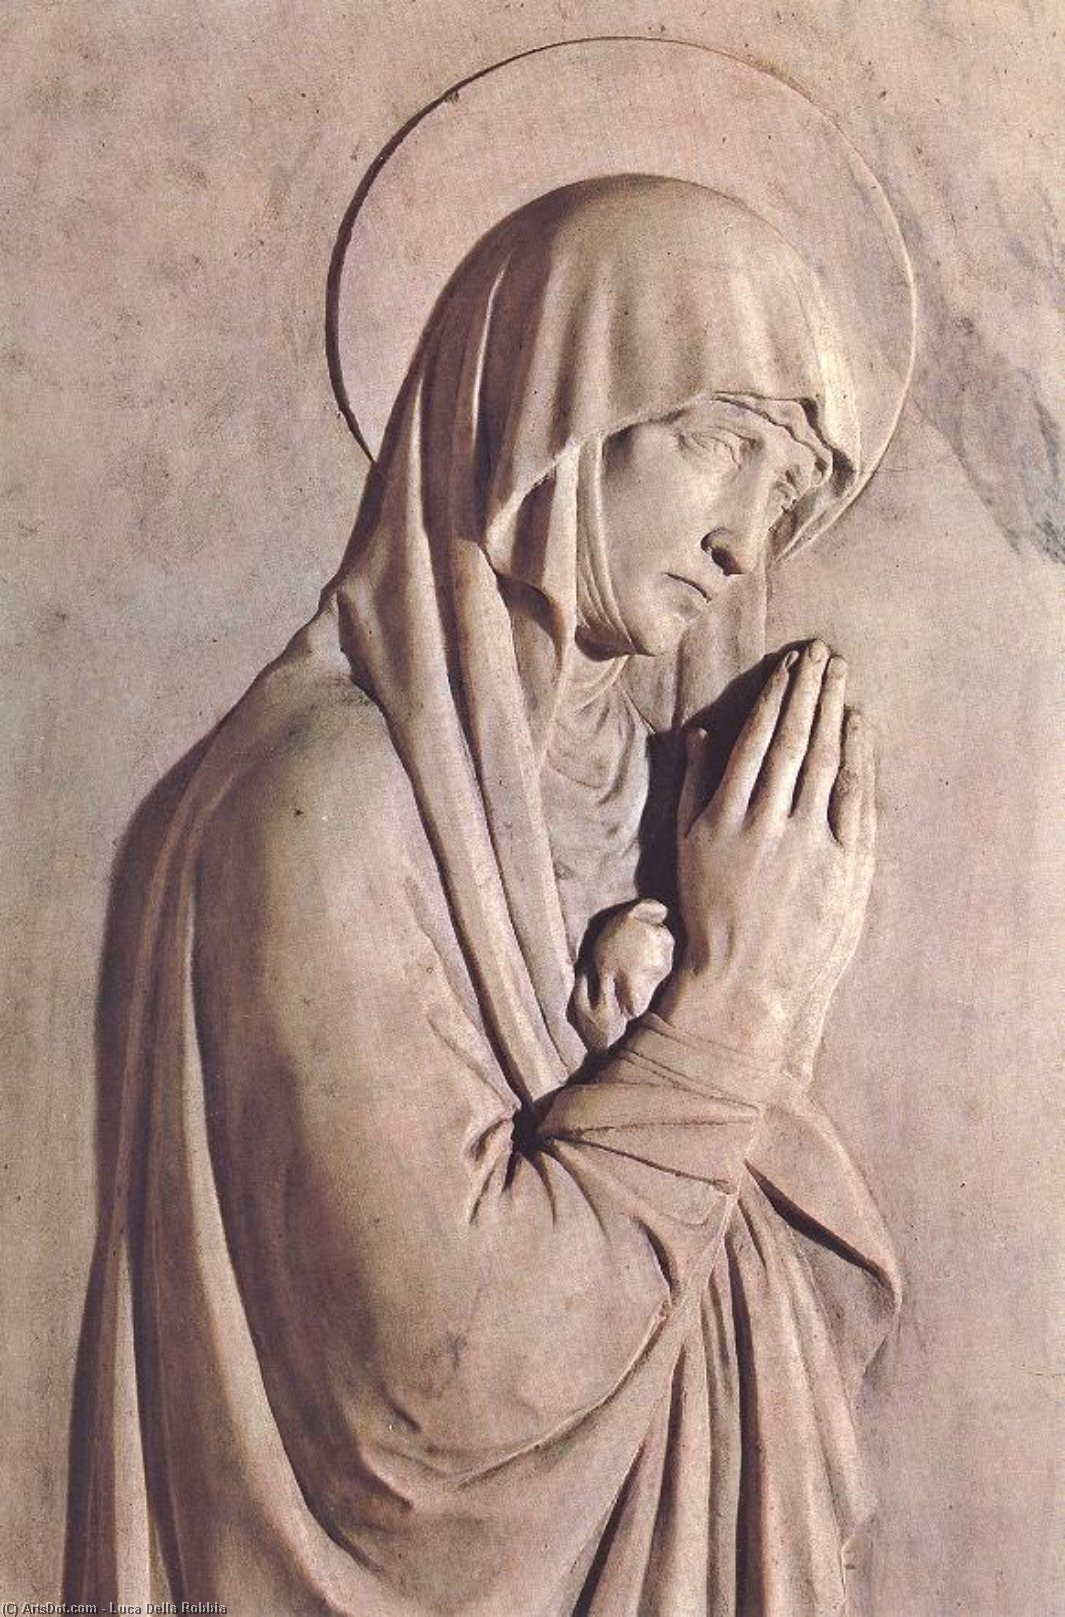 Monument to Bishop Benozzo Federighi (detail), Marble by Luca Della Robbia (1399-1482, Italy)